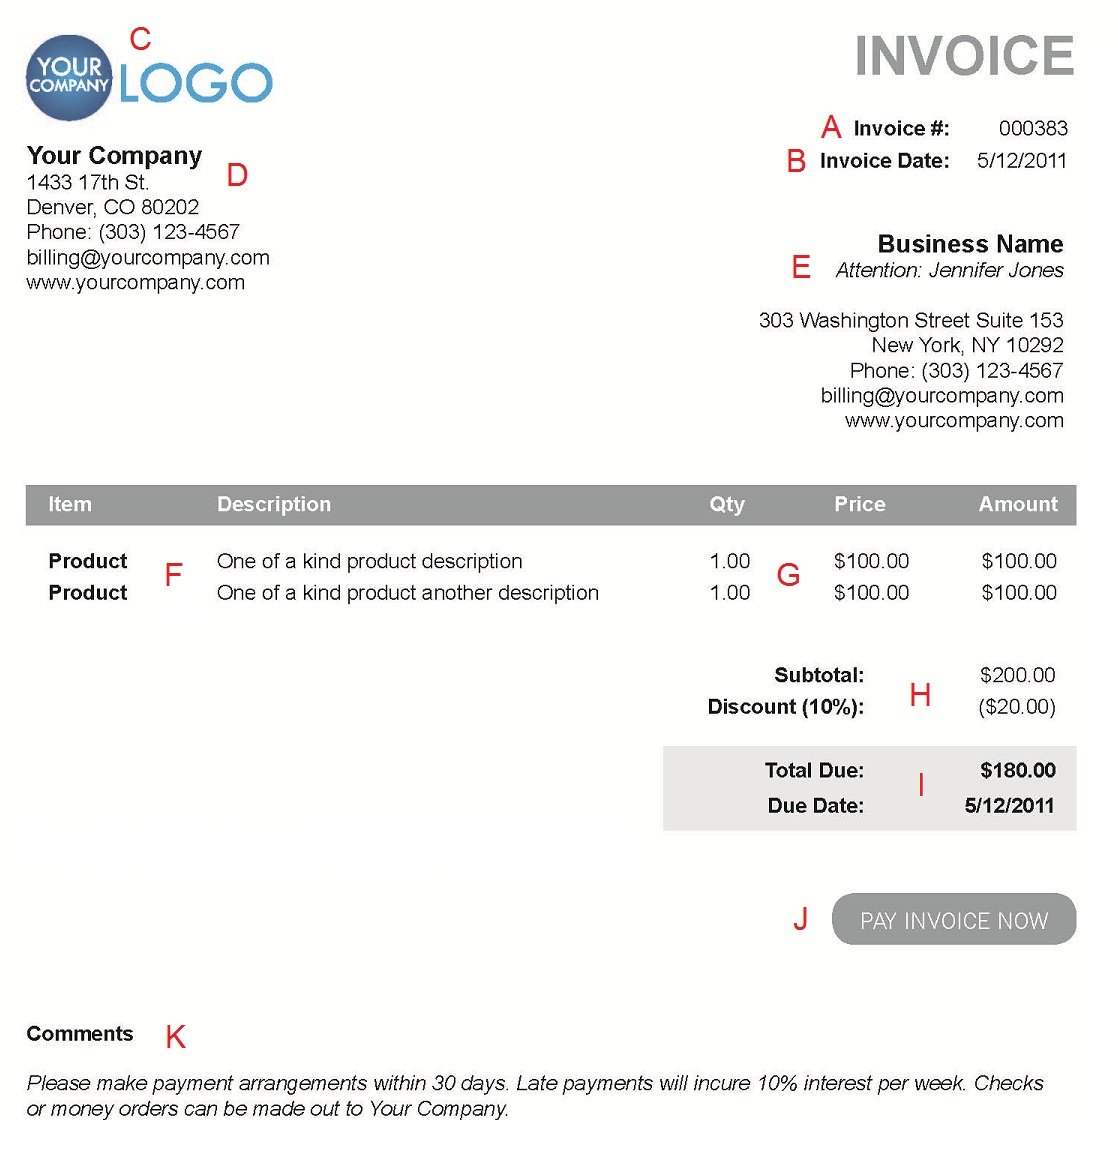 Coachoutletonlineplusus  Pretty The  Different Sections Of An Electronic Payment Invoice With Exquisite A  With Attractive Free Receipt Forms Also Private Car Sale Receipt Template In Addition Fake Sales Receipt And What Is Gross Receipt As Well As Receipt Pictures Additionally Cash Register Receipt Template From Paysimplecom With Coachoutletonlineplusus  Exquisite The  Different Sections Of An Electronic Payment Invoice With Attractive A  And Pretty Free Receipt Forms Also Private Car Sale Receipt Template In Addition Fake Sales Receipt From Paysimplecom